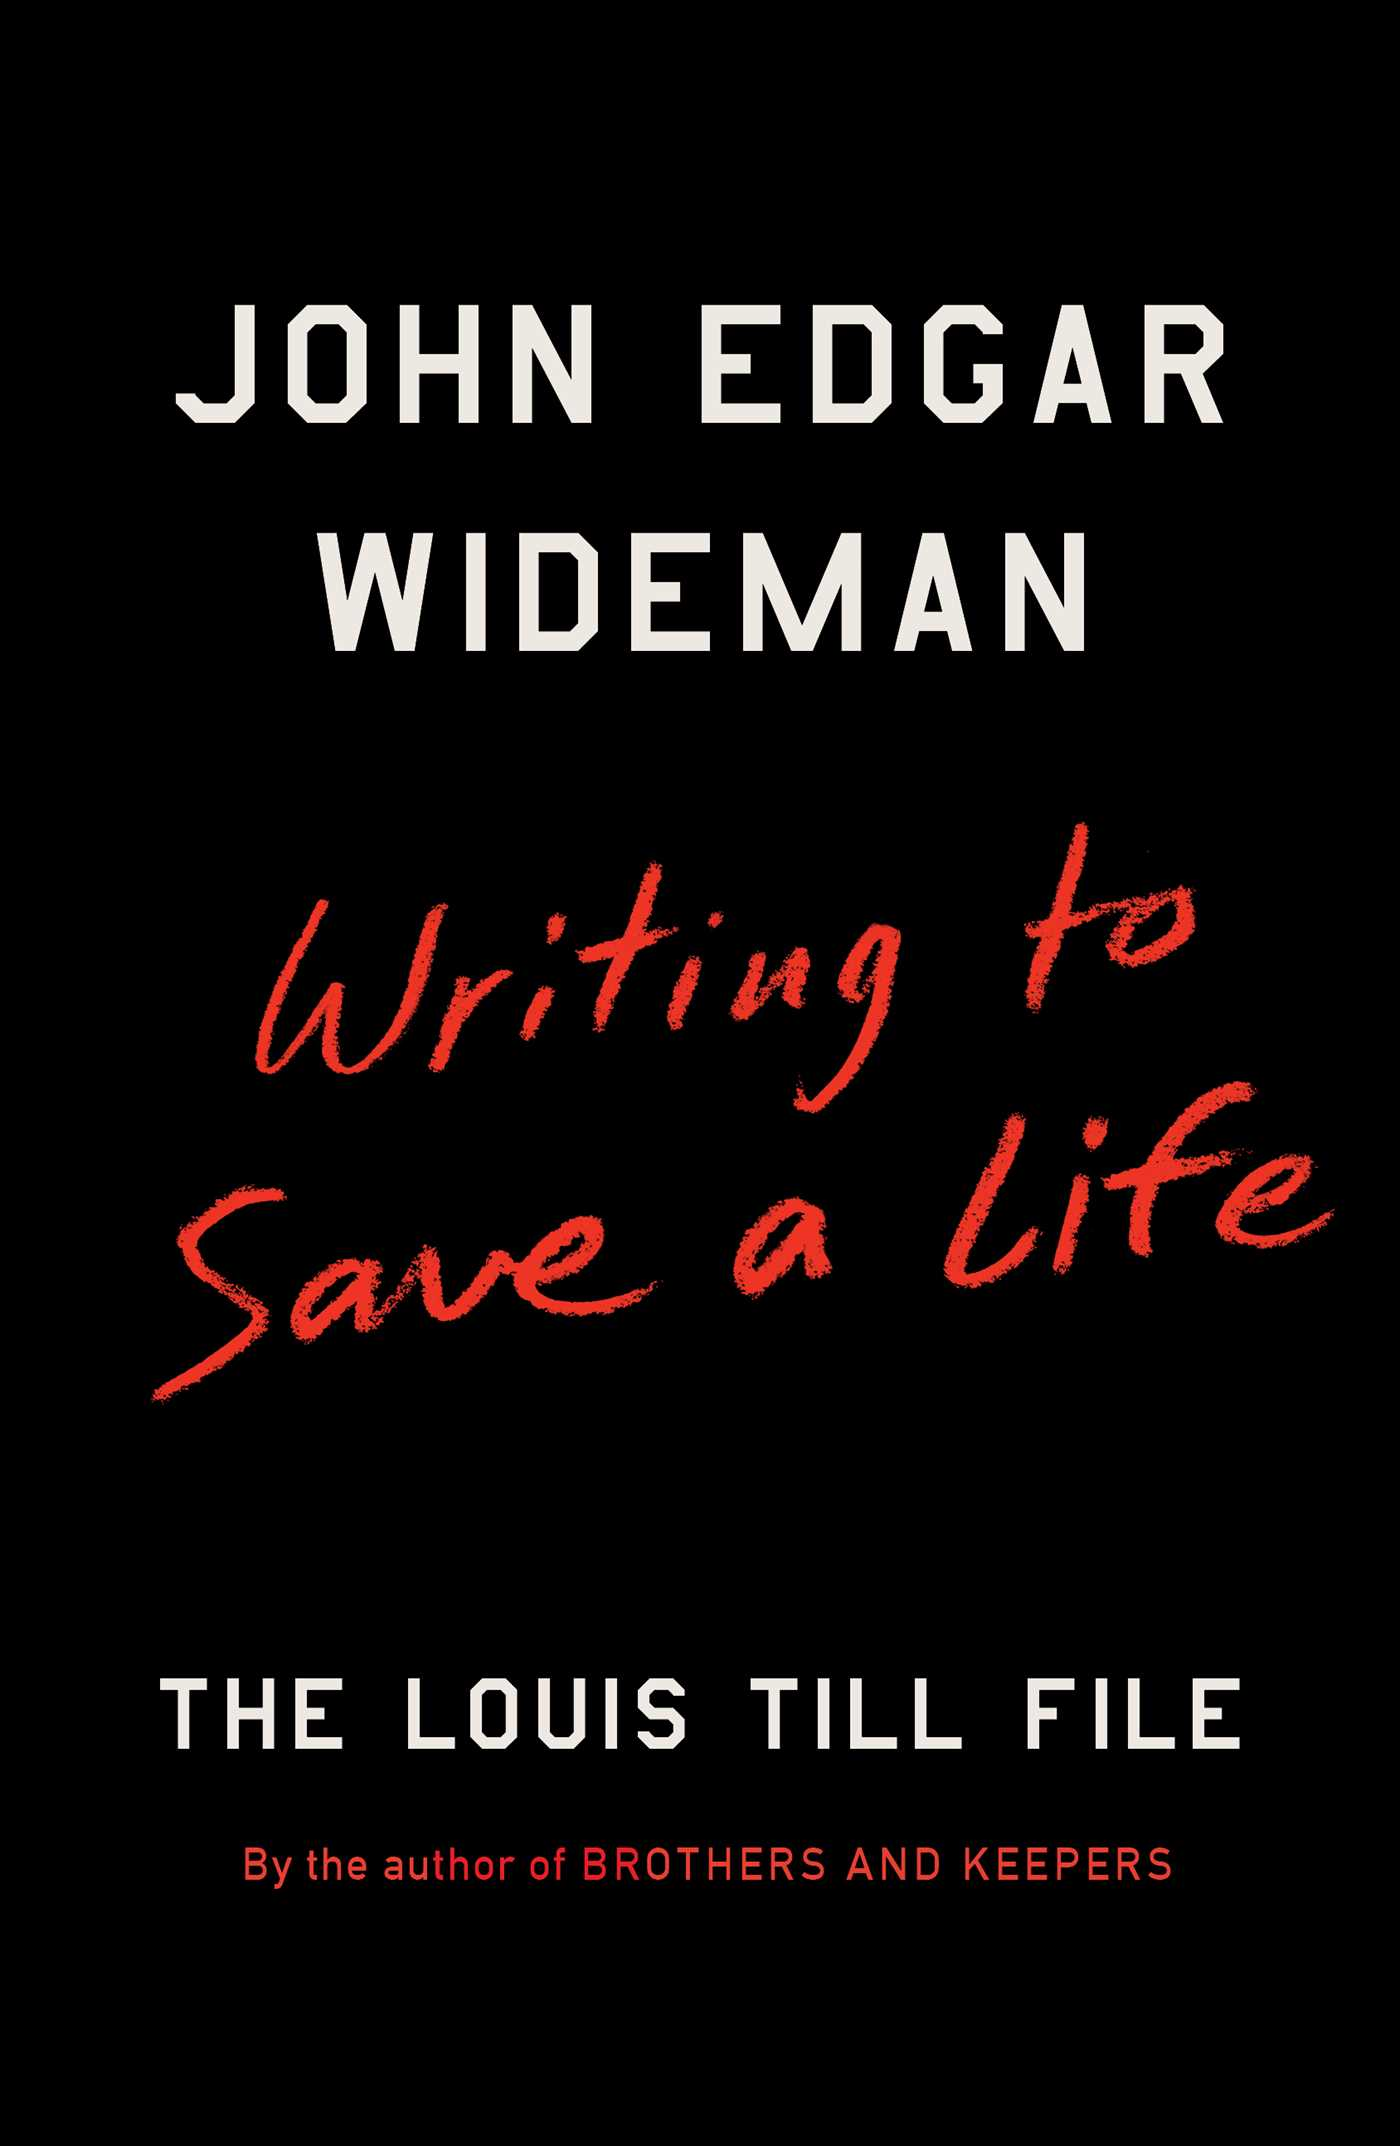 our time by john wideman essay They are simply a product of their own environments and the events that make  and shape them john edgar widemans our time is an essay about how john.